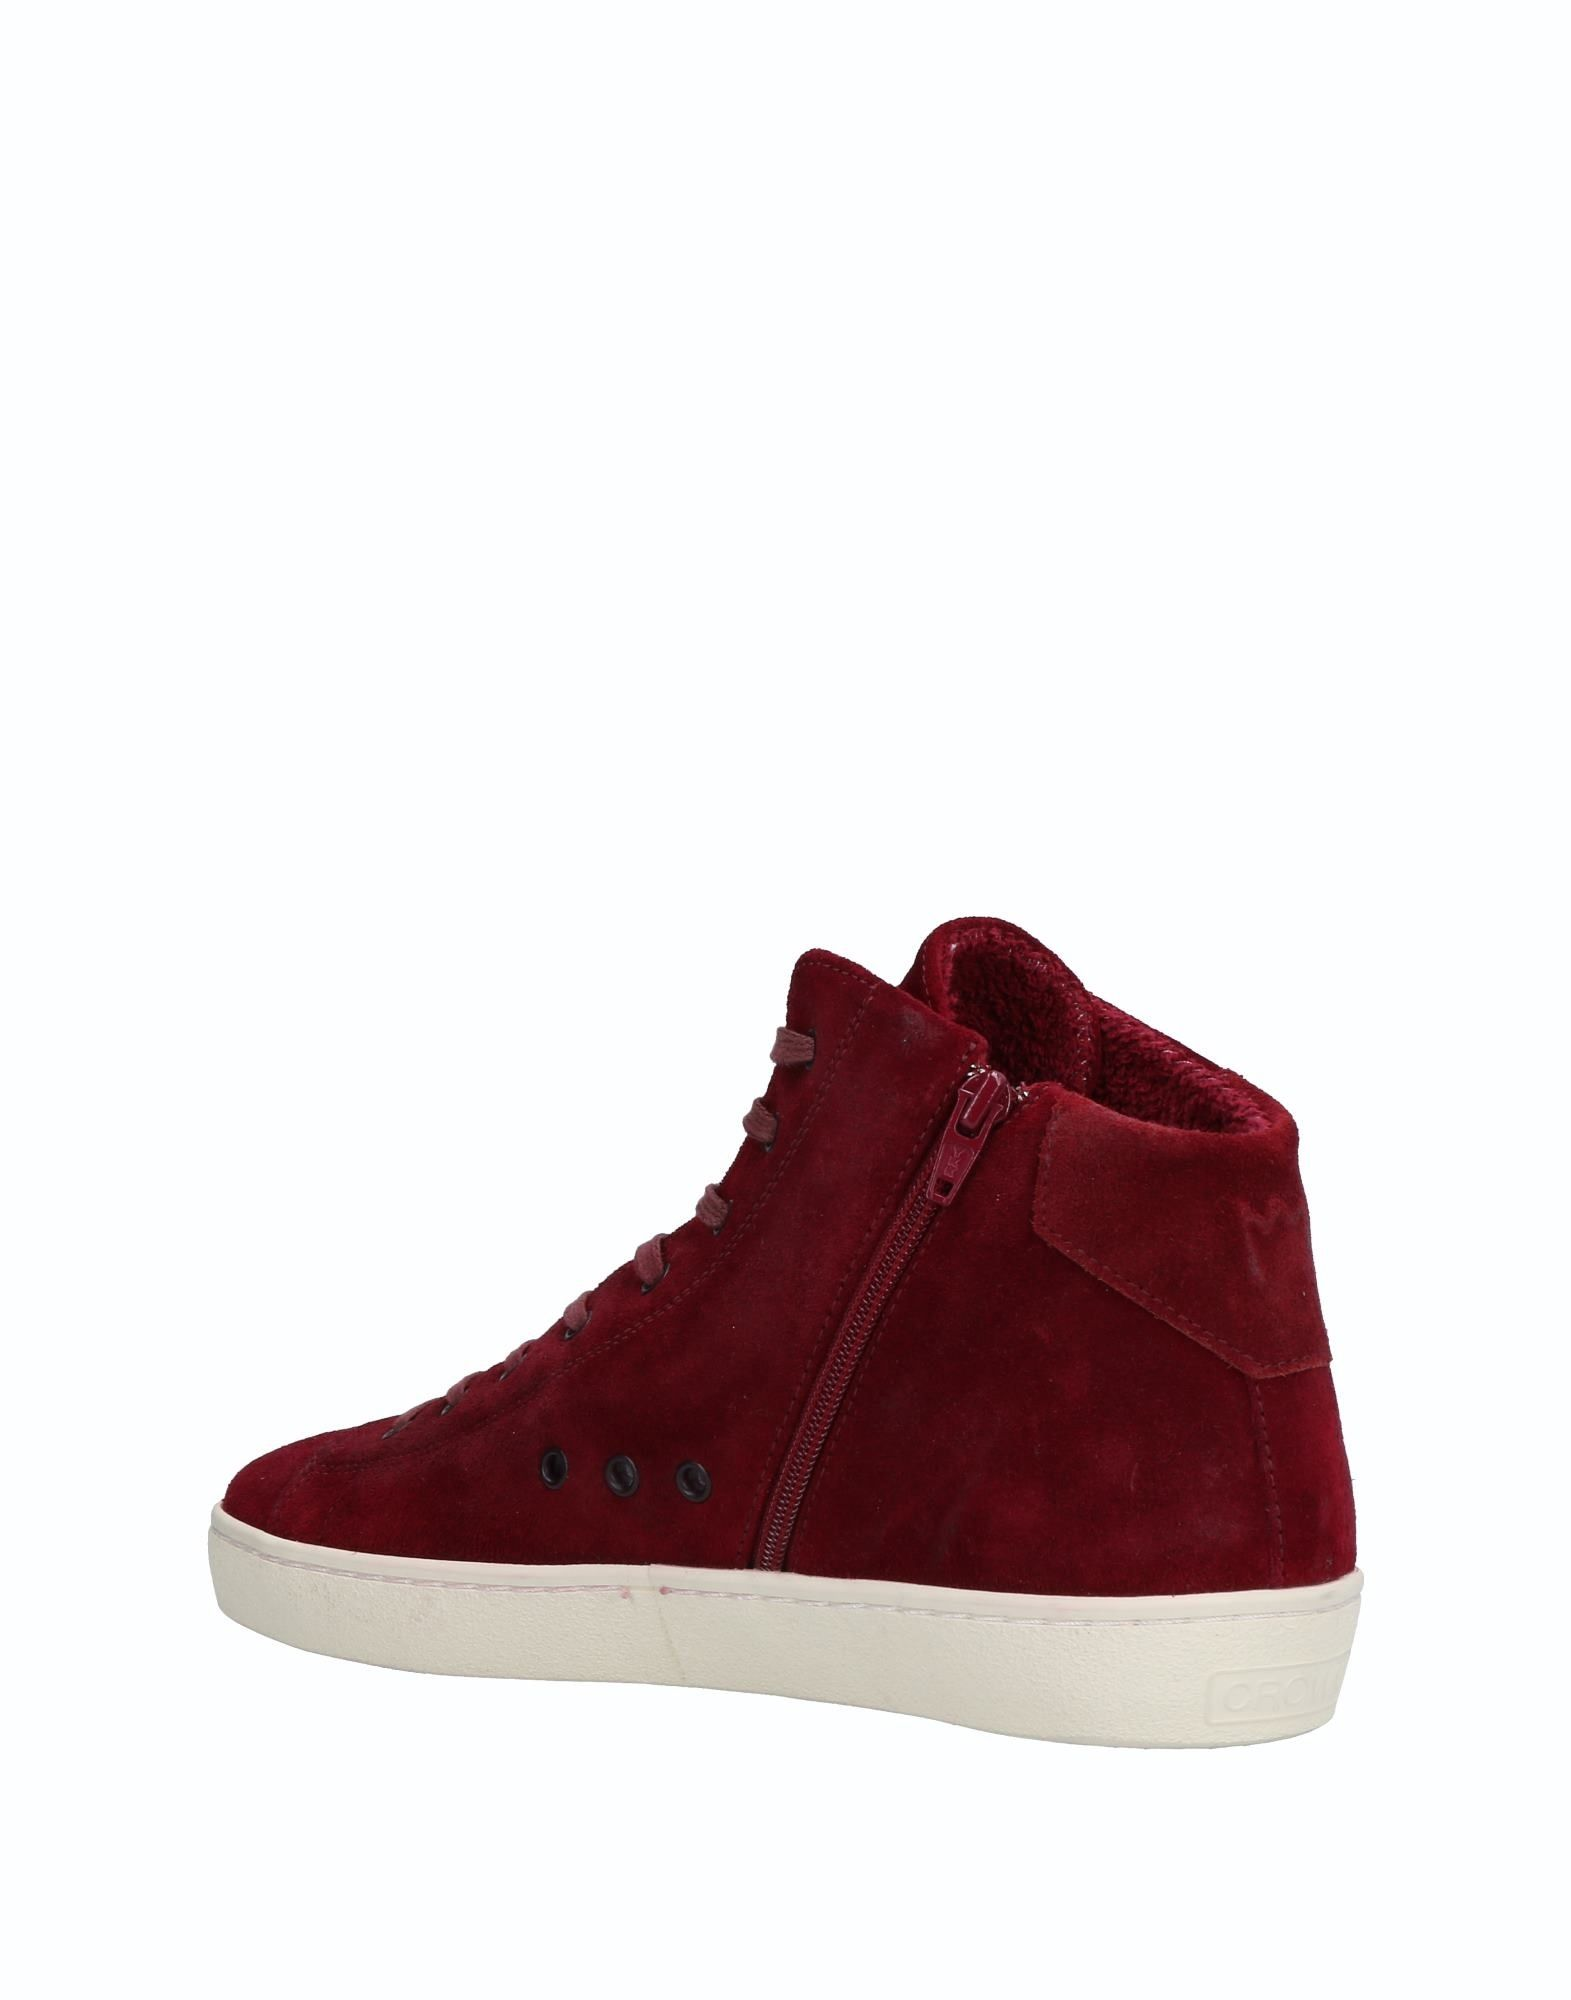 Leather Neue Crown Sneakers Herren  11514343VV Neue Leather Schuhe d4bc44